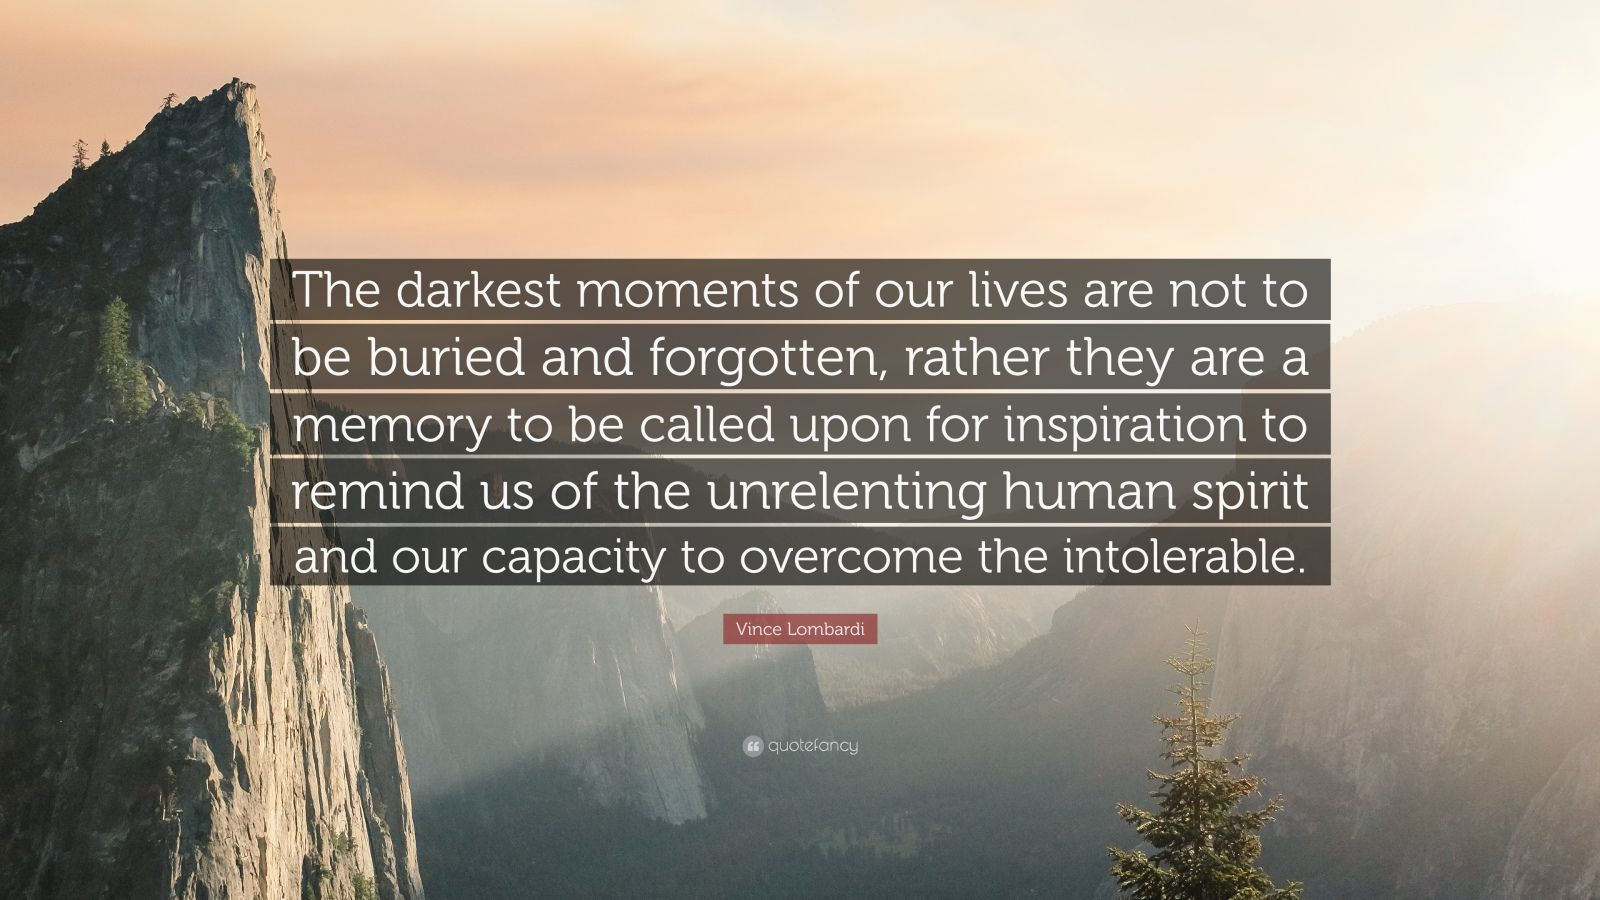 """Vince Lombardi Quote: """"The darkest moments of our lives are not to be buried and forgotten, rather they are a memory to be called upon for inspiration to remind us of the unrelenting human spirit and our capacity to overcome the intolerable."""""""